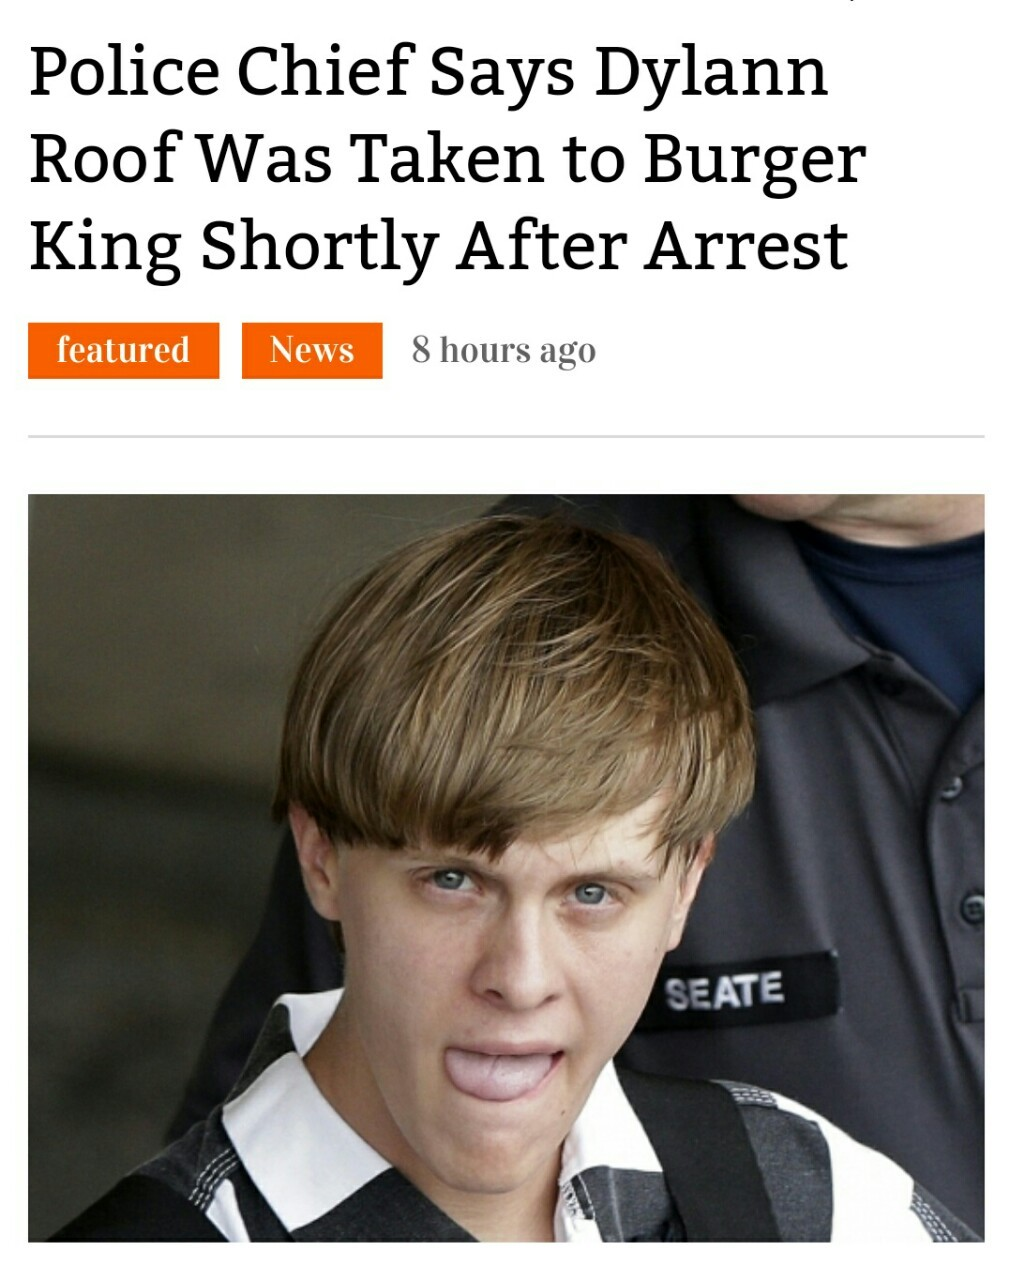 dylann-roof-tumblr